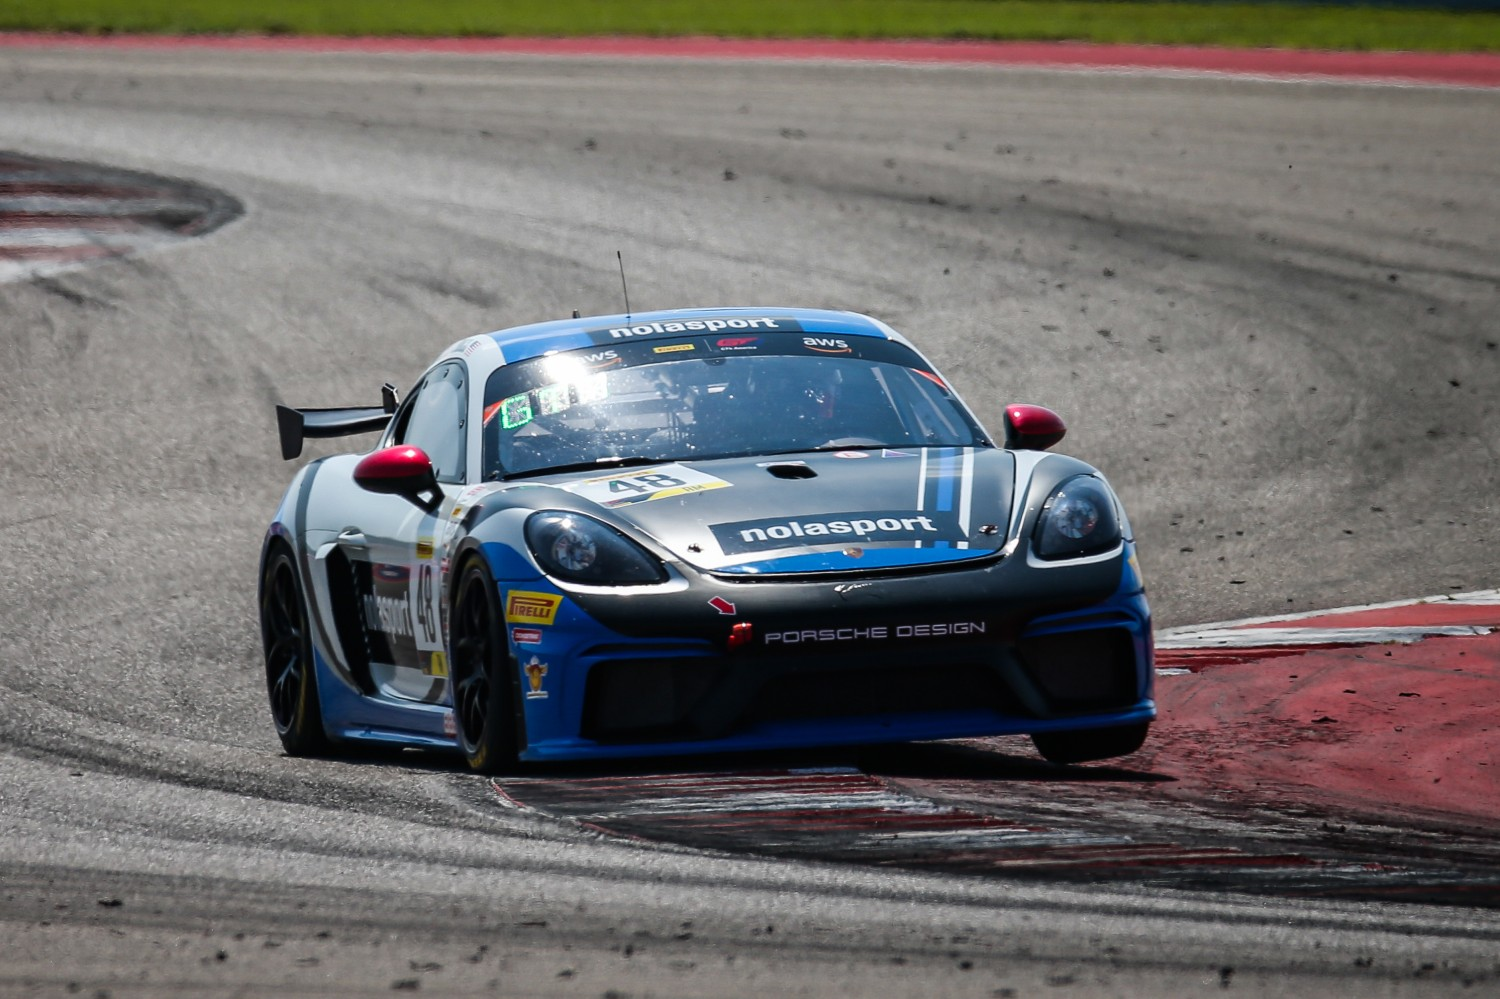 #48 Porsche 718 Cayman GT4 of Jason Hall, NOLASPORT, GT 4 Sprint Am, SRO America, Circuit of the Americas, Austin TX, September 2020.  | Sarah Weeks/SRO